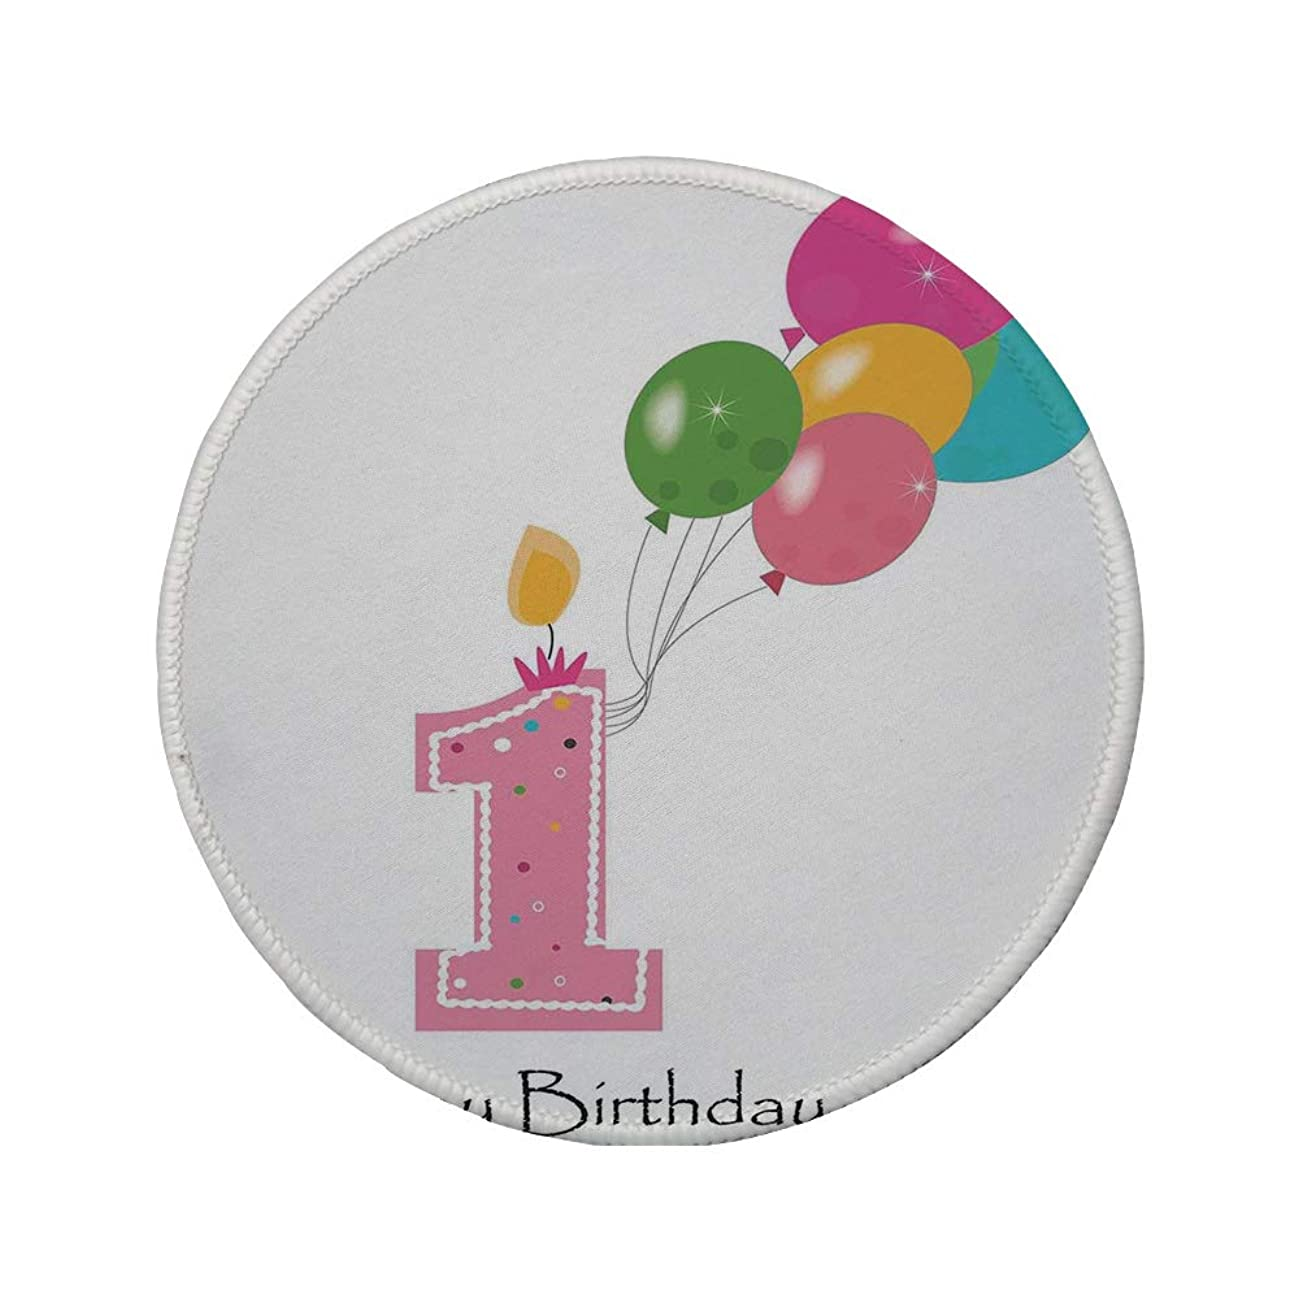 Non-Slip Rubber Round Mouse Pad,1st Birthday Decorations,Baby Girl Toddler Party Candle with Colorful Balloons,Light Pink and White,11.8